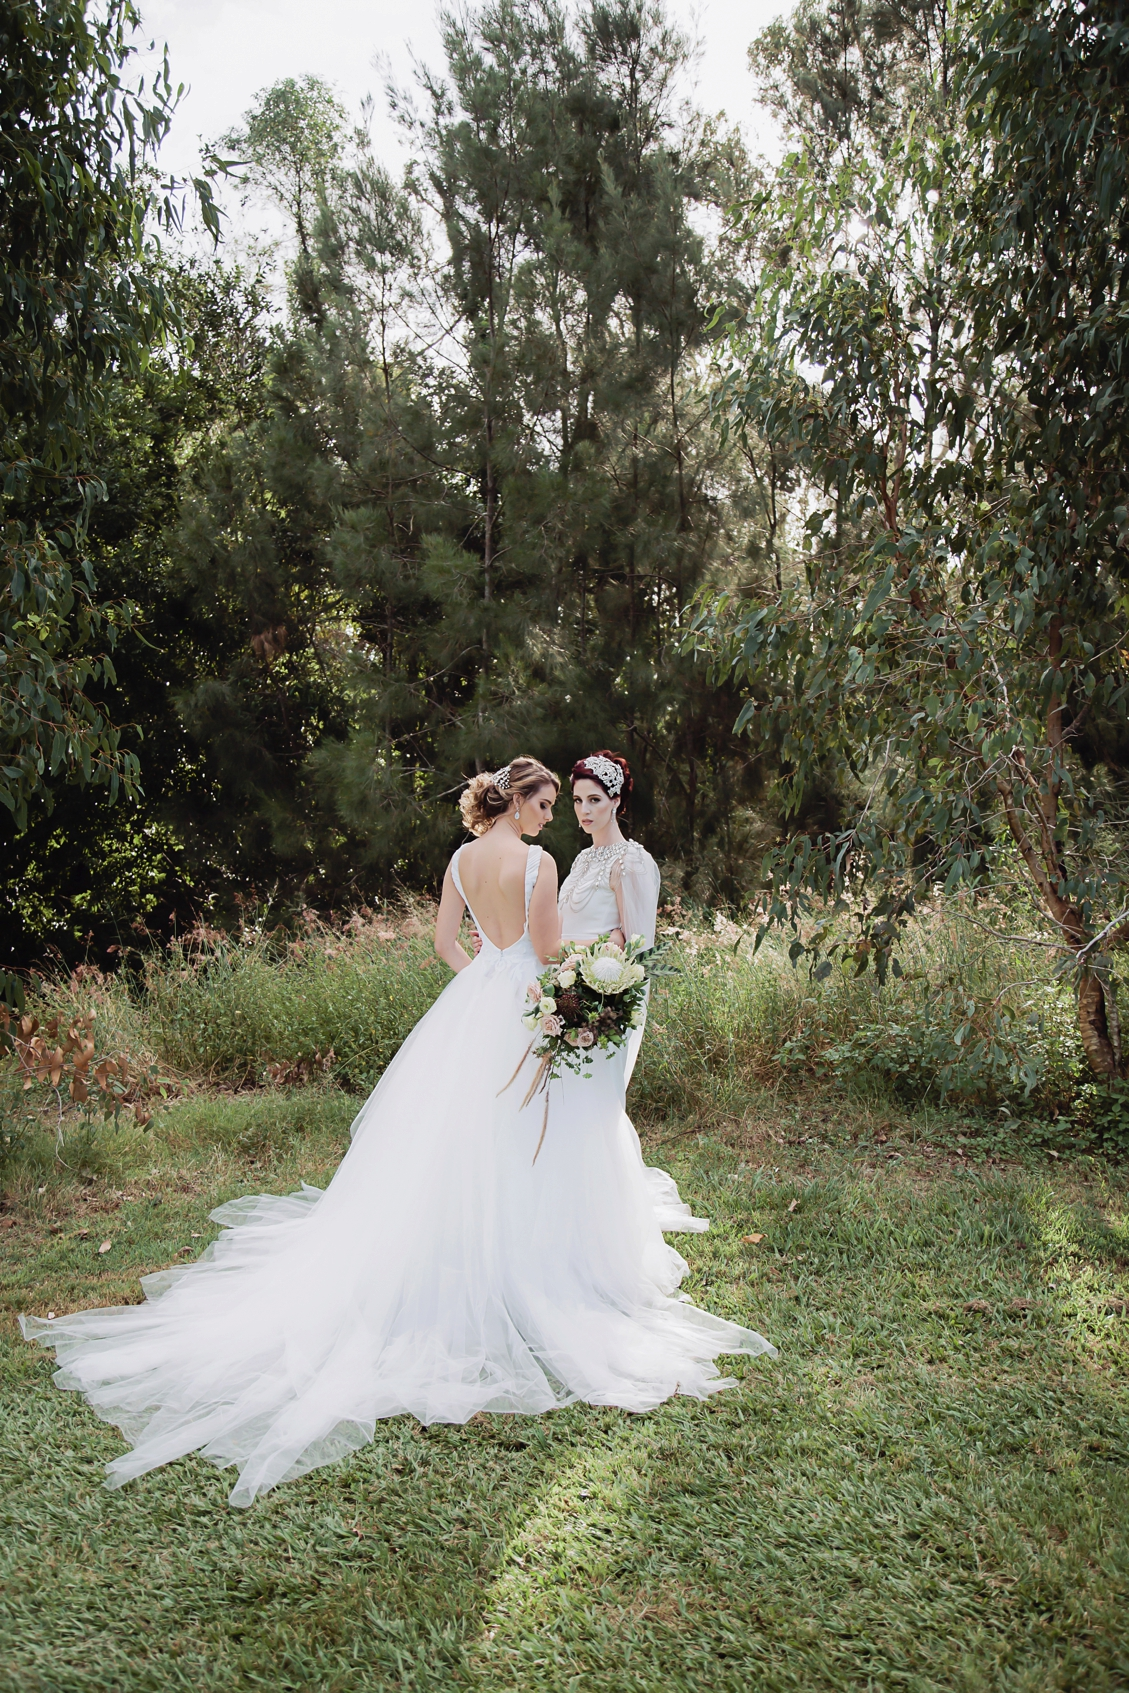 Hillstone-St-Luica-Same-Sex-Style-Shoot-Photographer-Quincenmulberry_0001